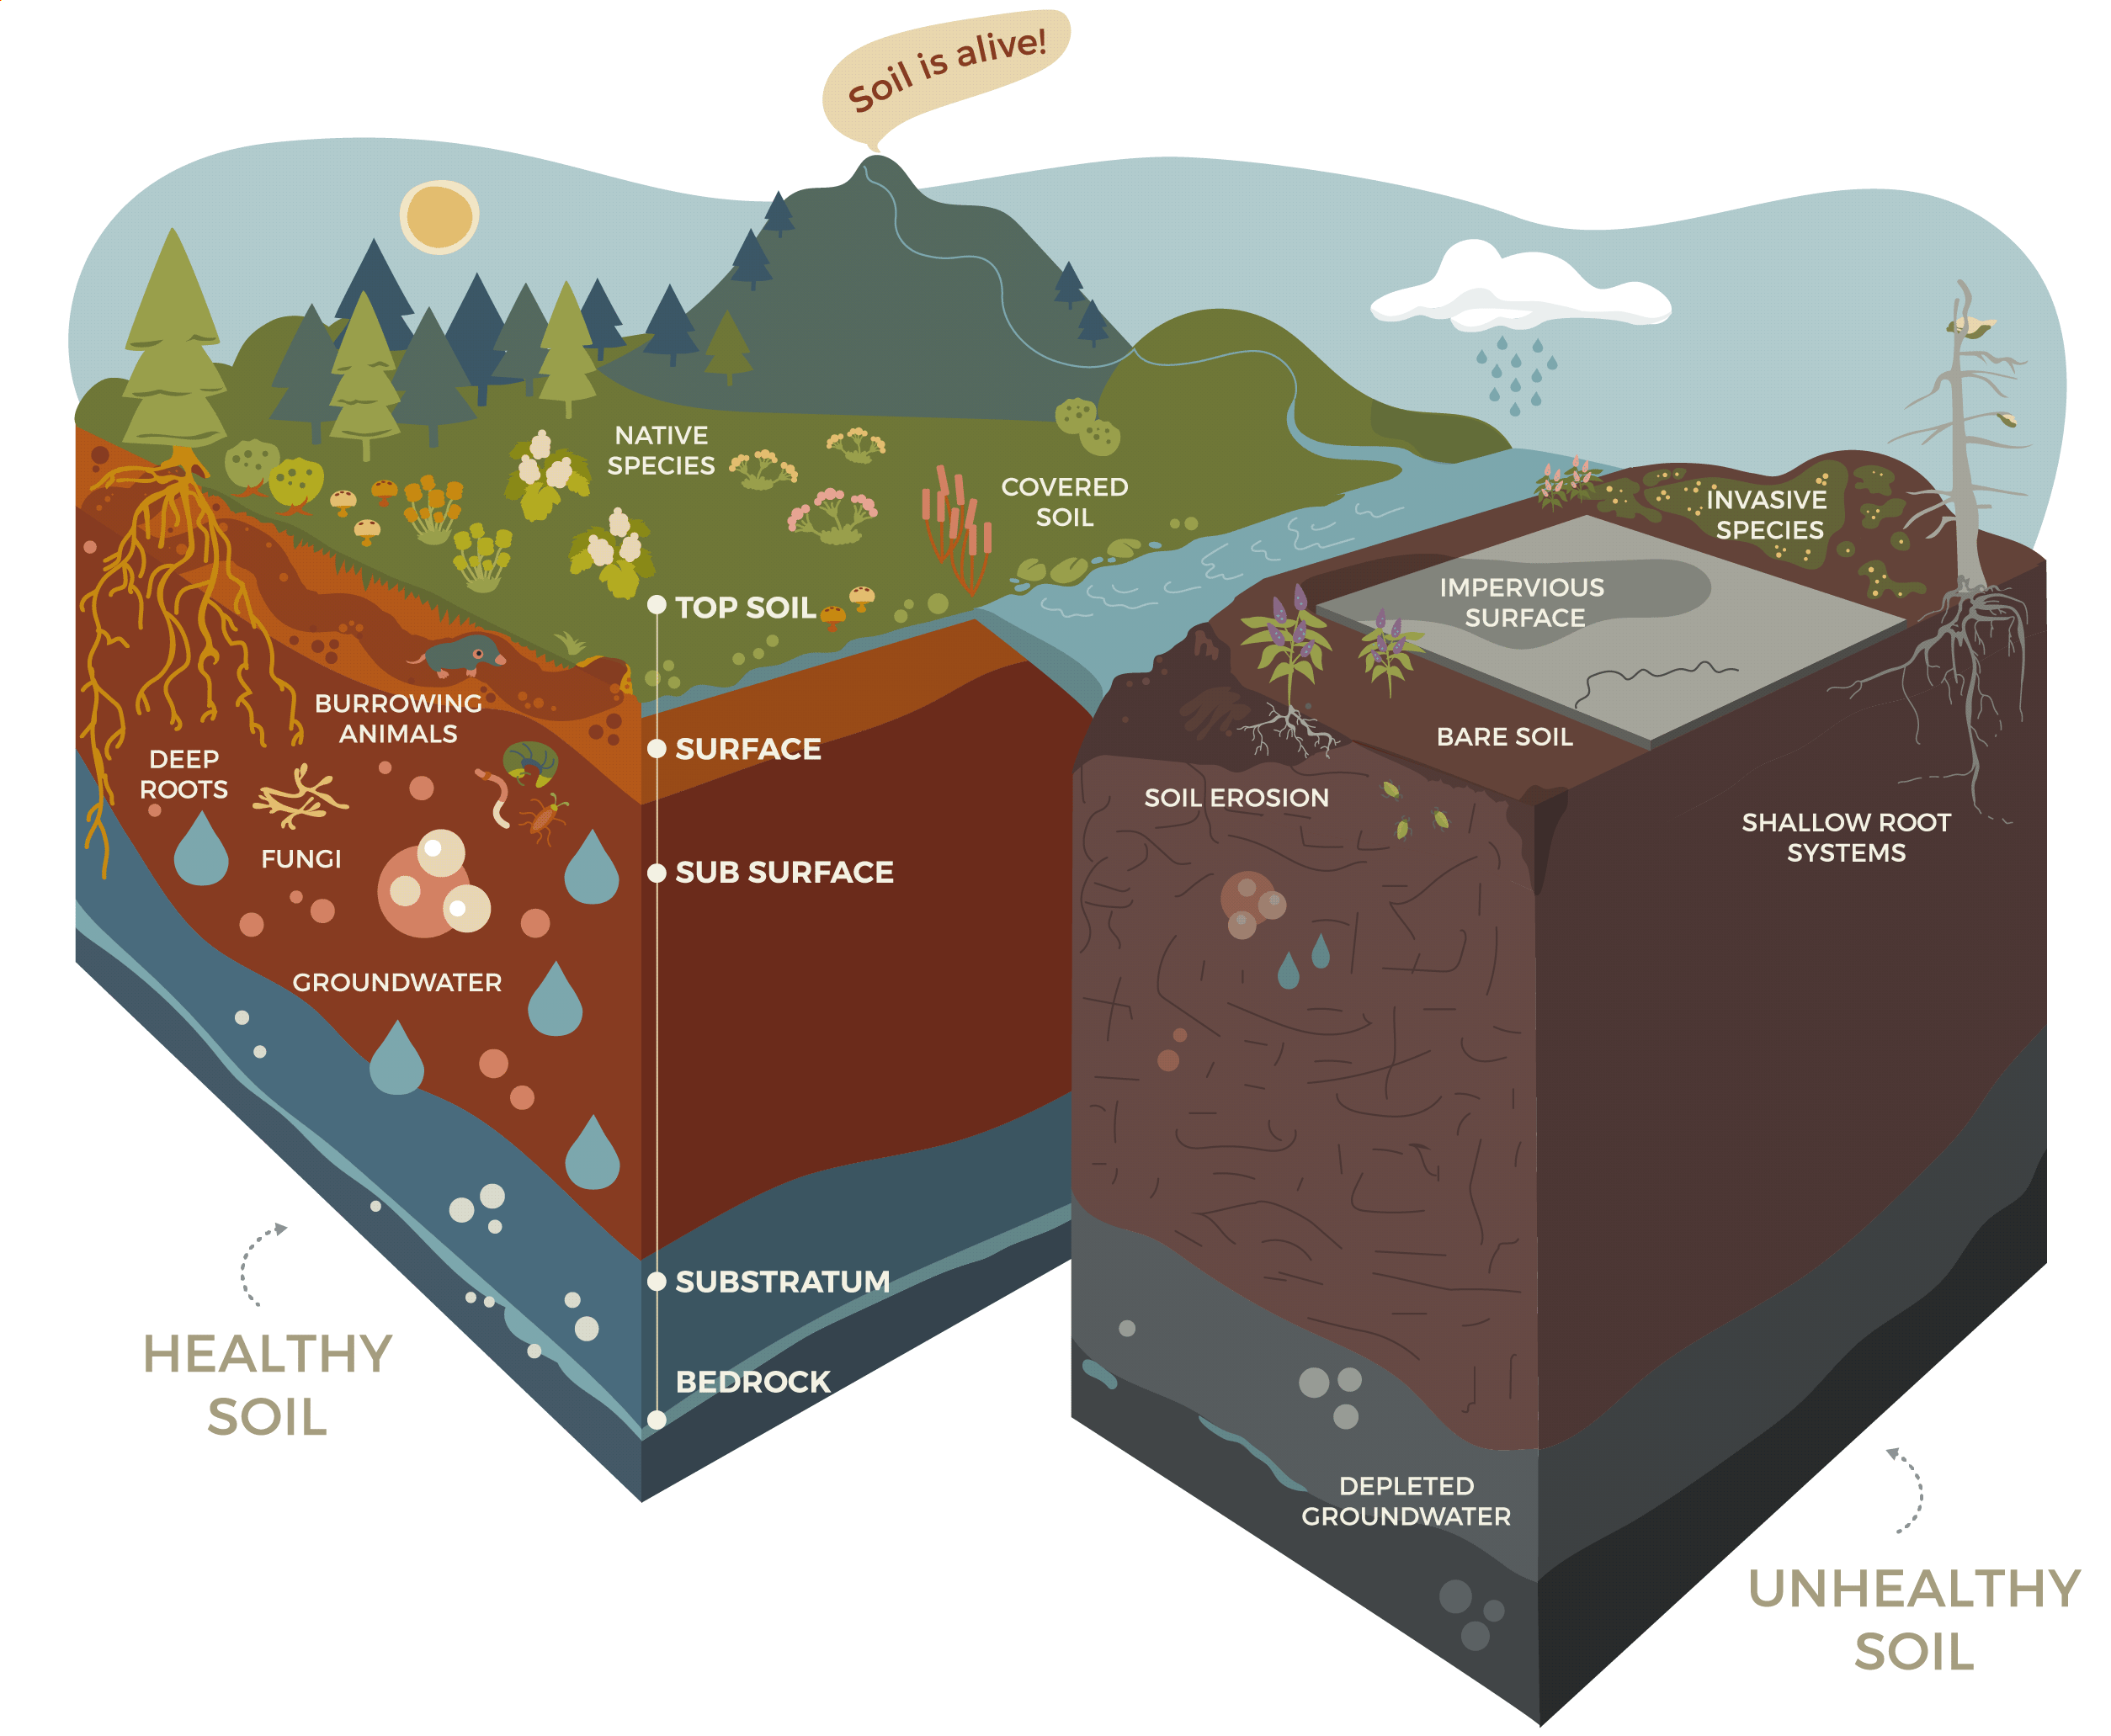 Healthy vs Unhealthy Soil Infographic. Soil is Alive!